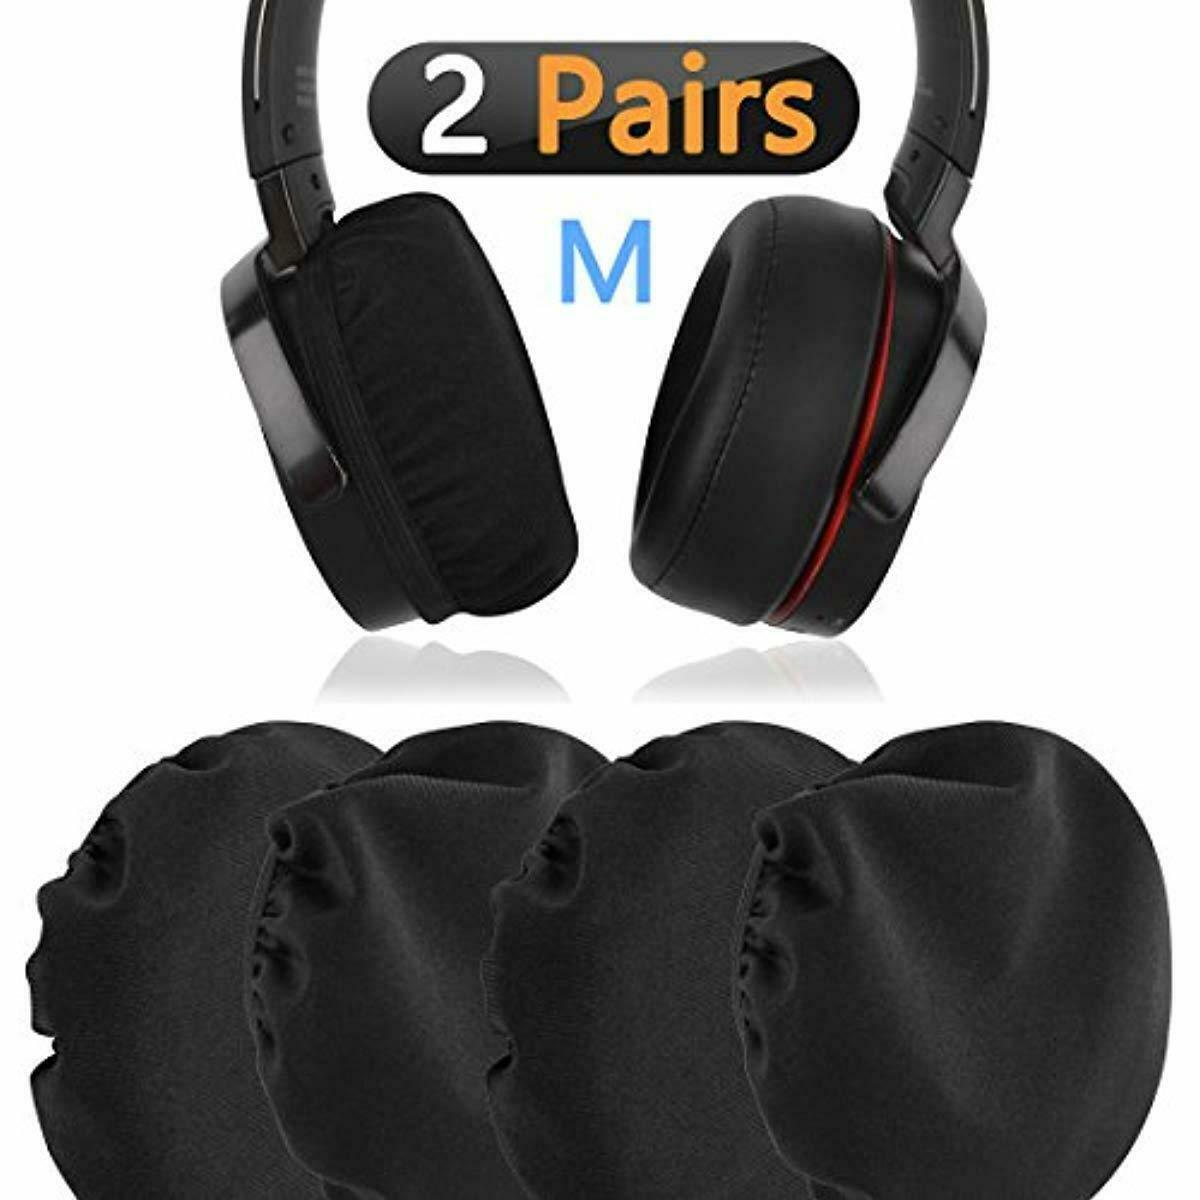 Geekria Flex Fabric Headphone Earpad Covers/Stretchable and